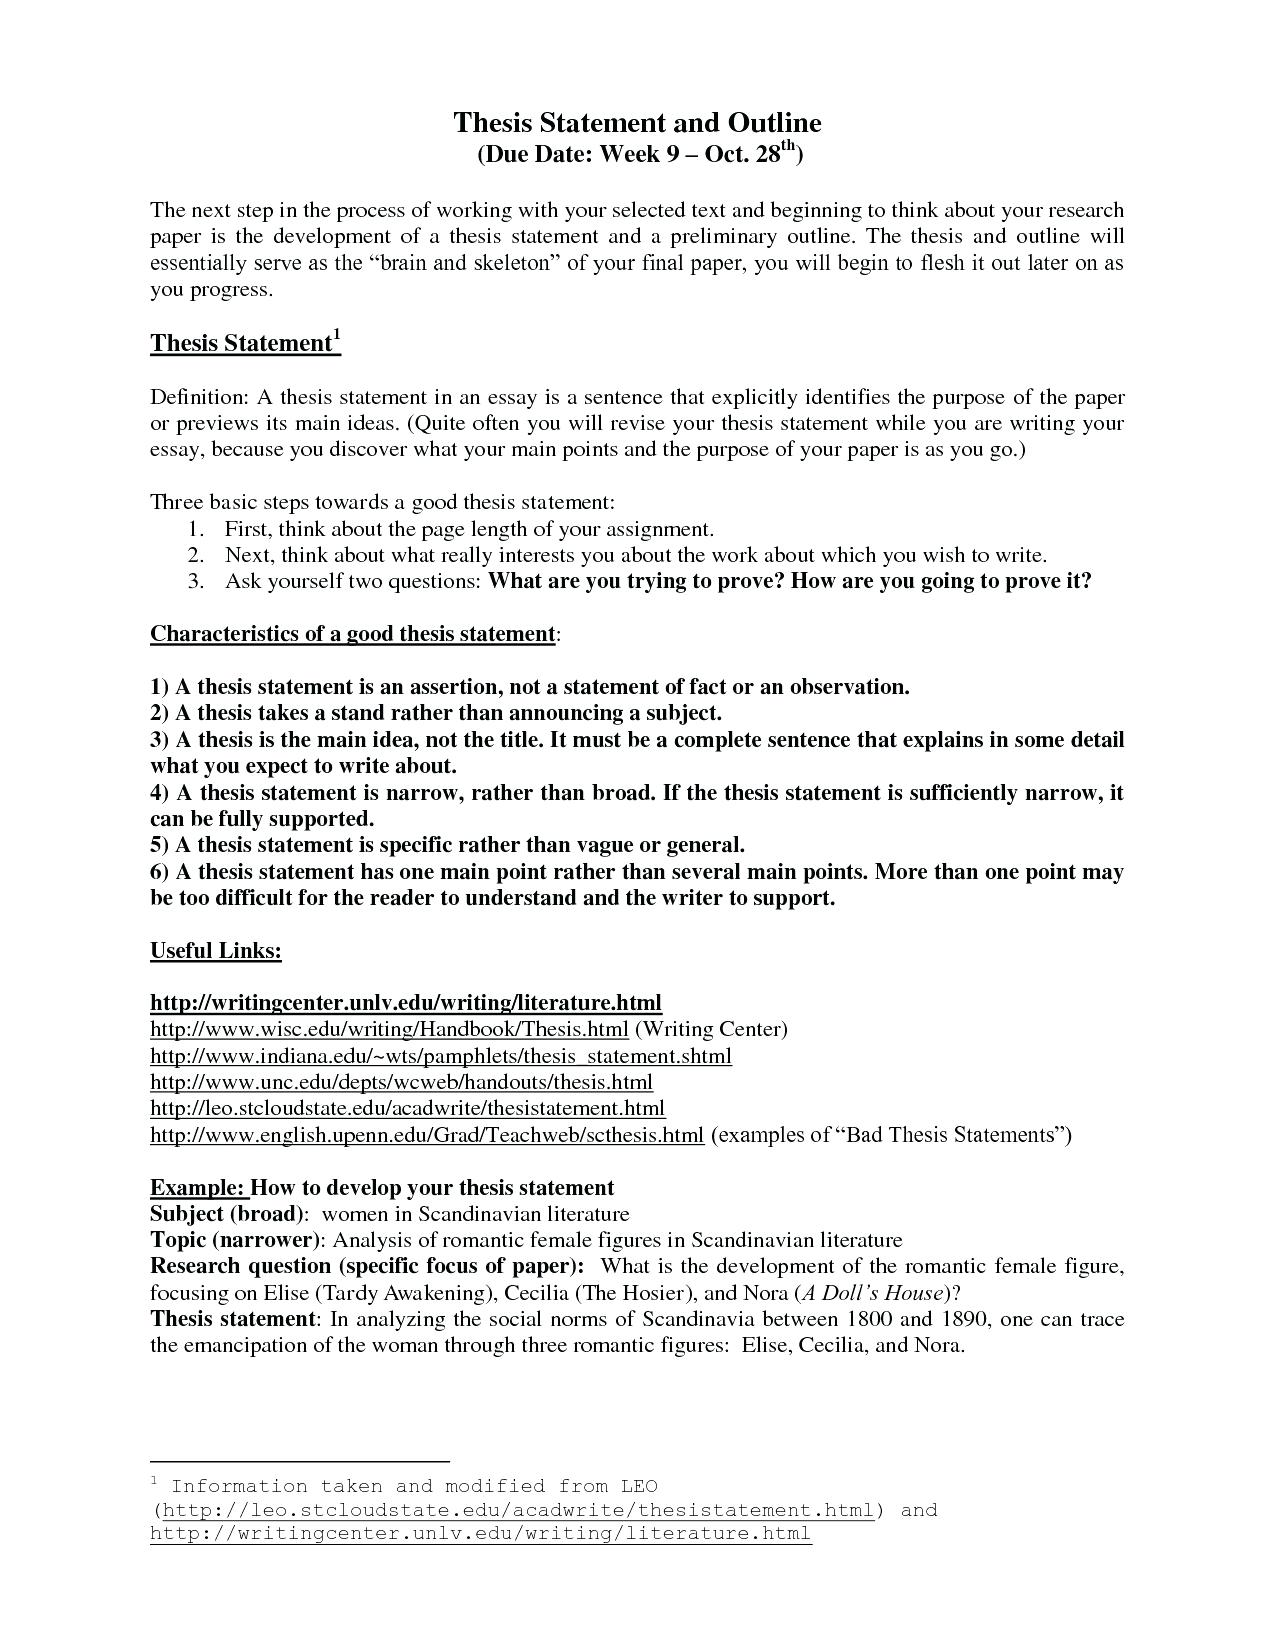 004 Essay Example Apa Template Paper Definition With Cheap Papers Style Running Head Write My For Shocking Free App Argumentative Online Full